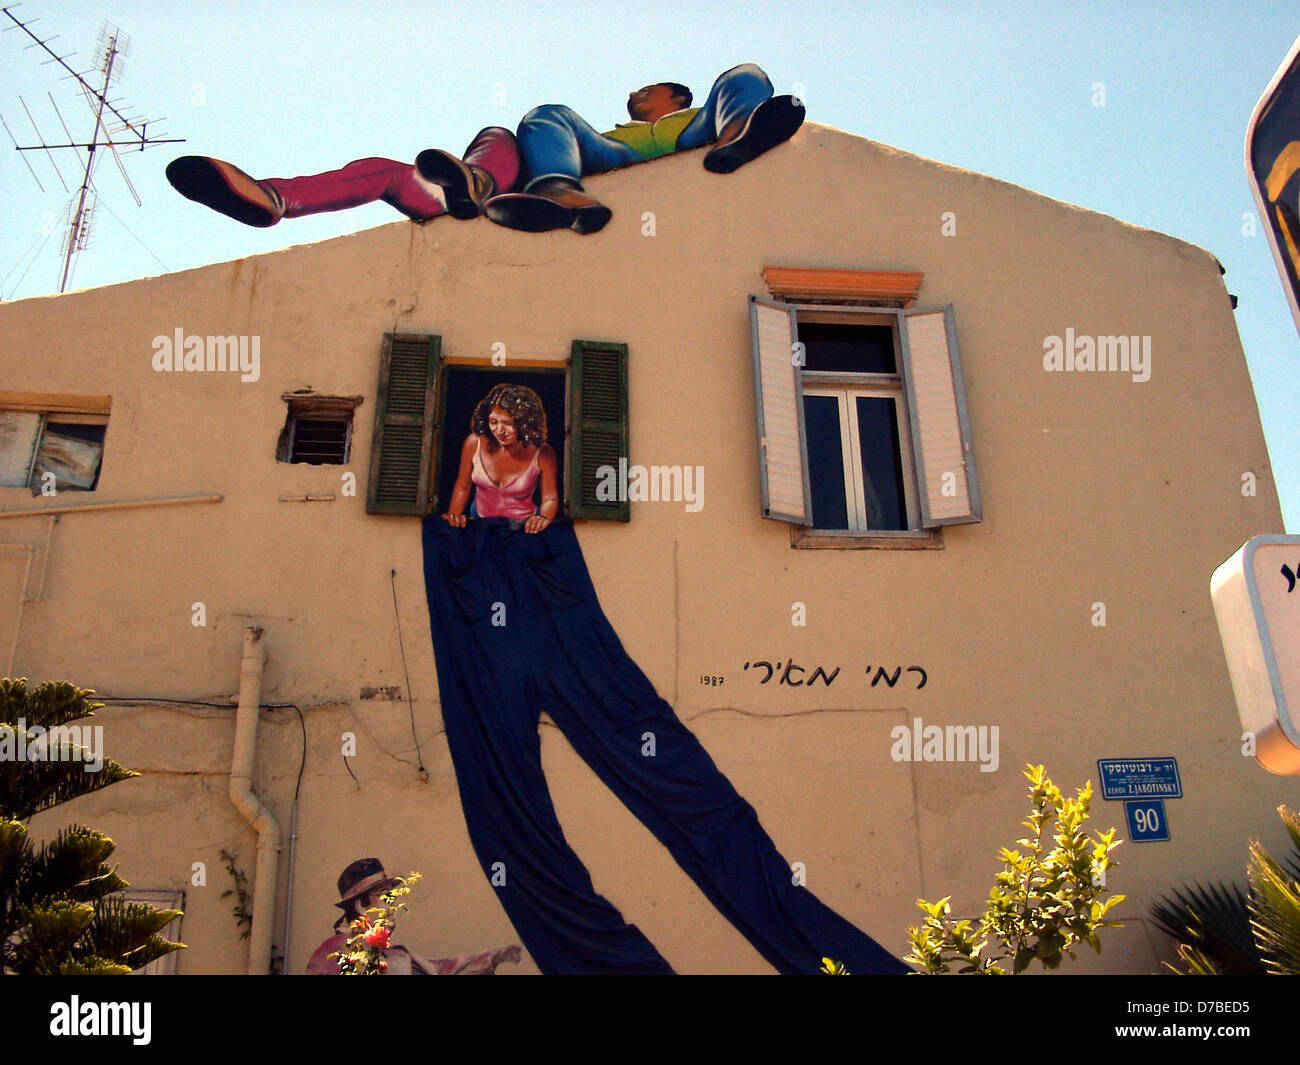 mural drawing on a house in tel aviv - Stock Image